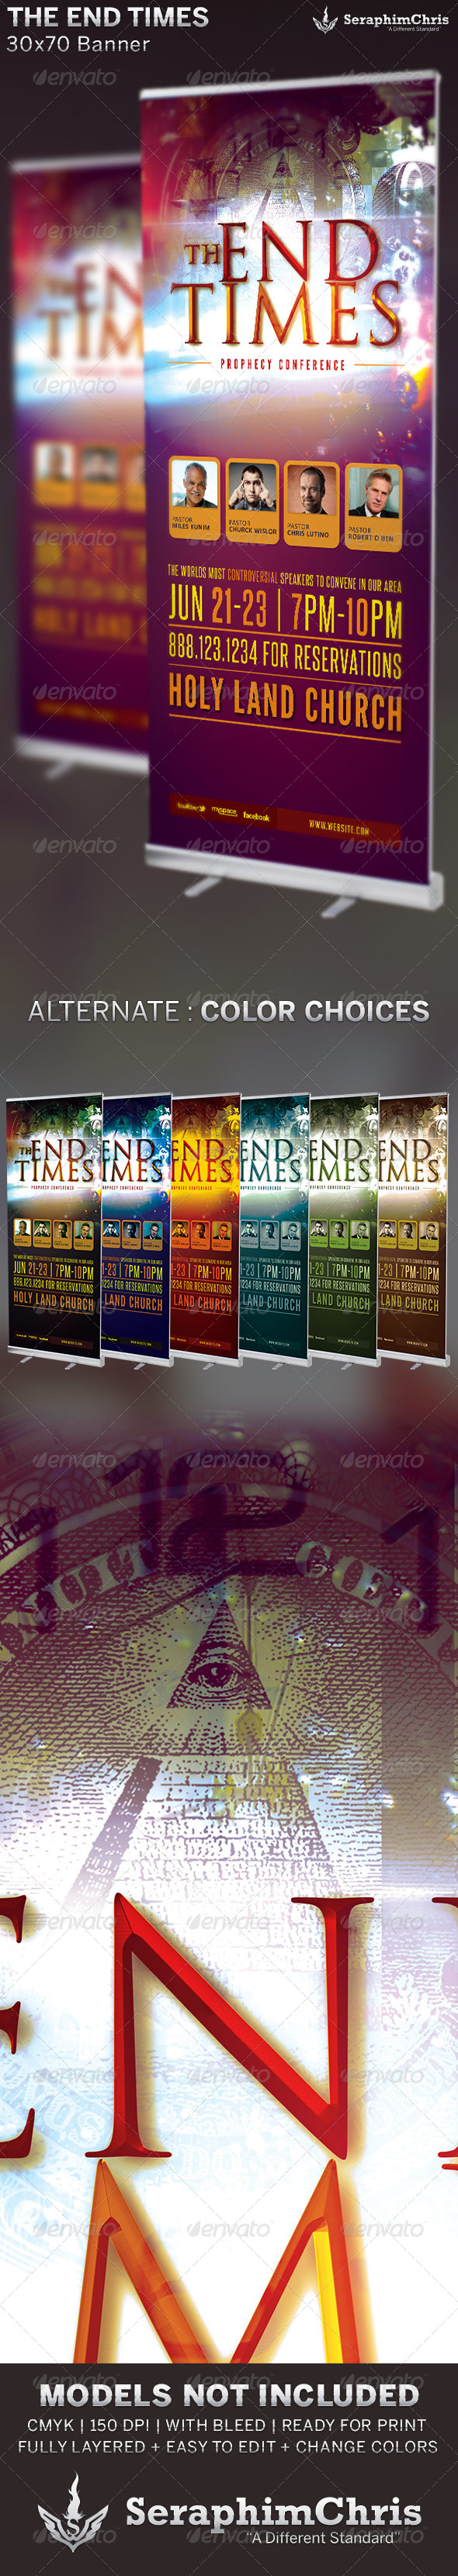 The End Times: Banner Template - Signage Print Templates